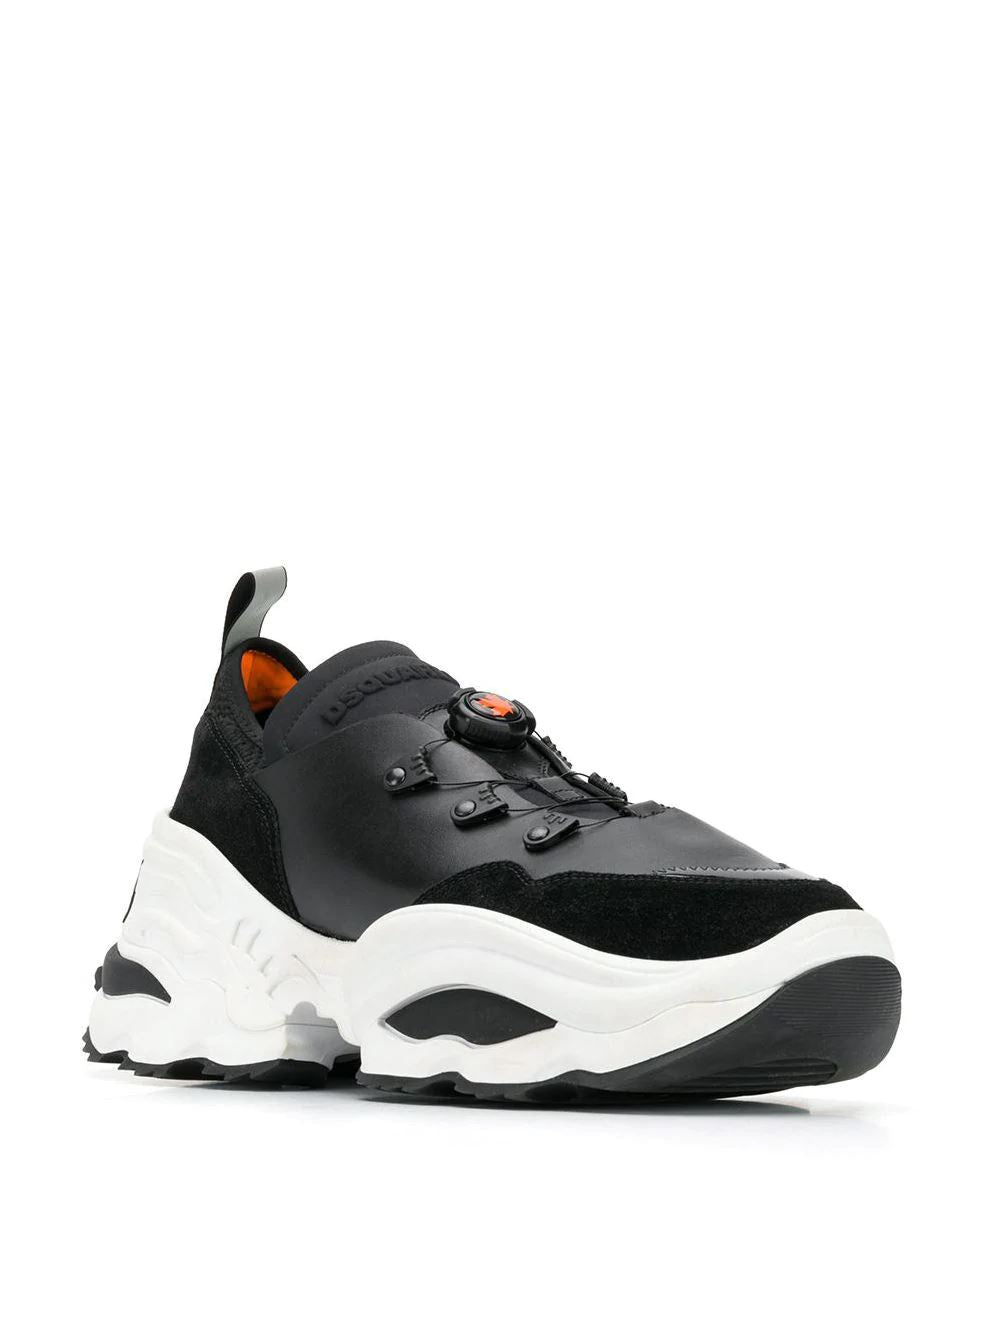 DSQUARED2 The Giant chunky sneakers - Maison De Fashion